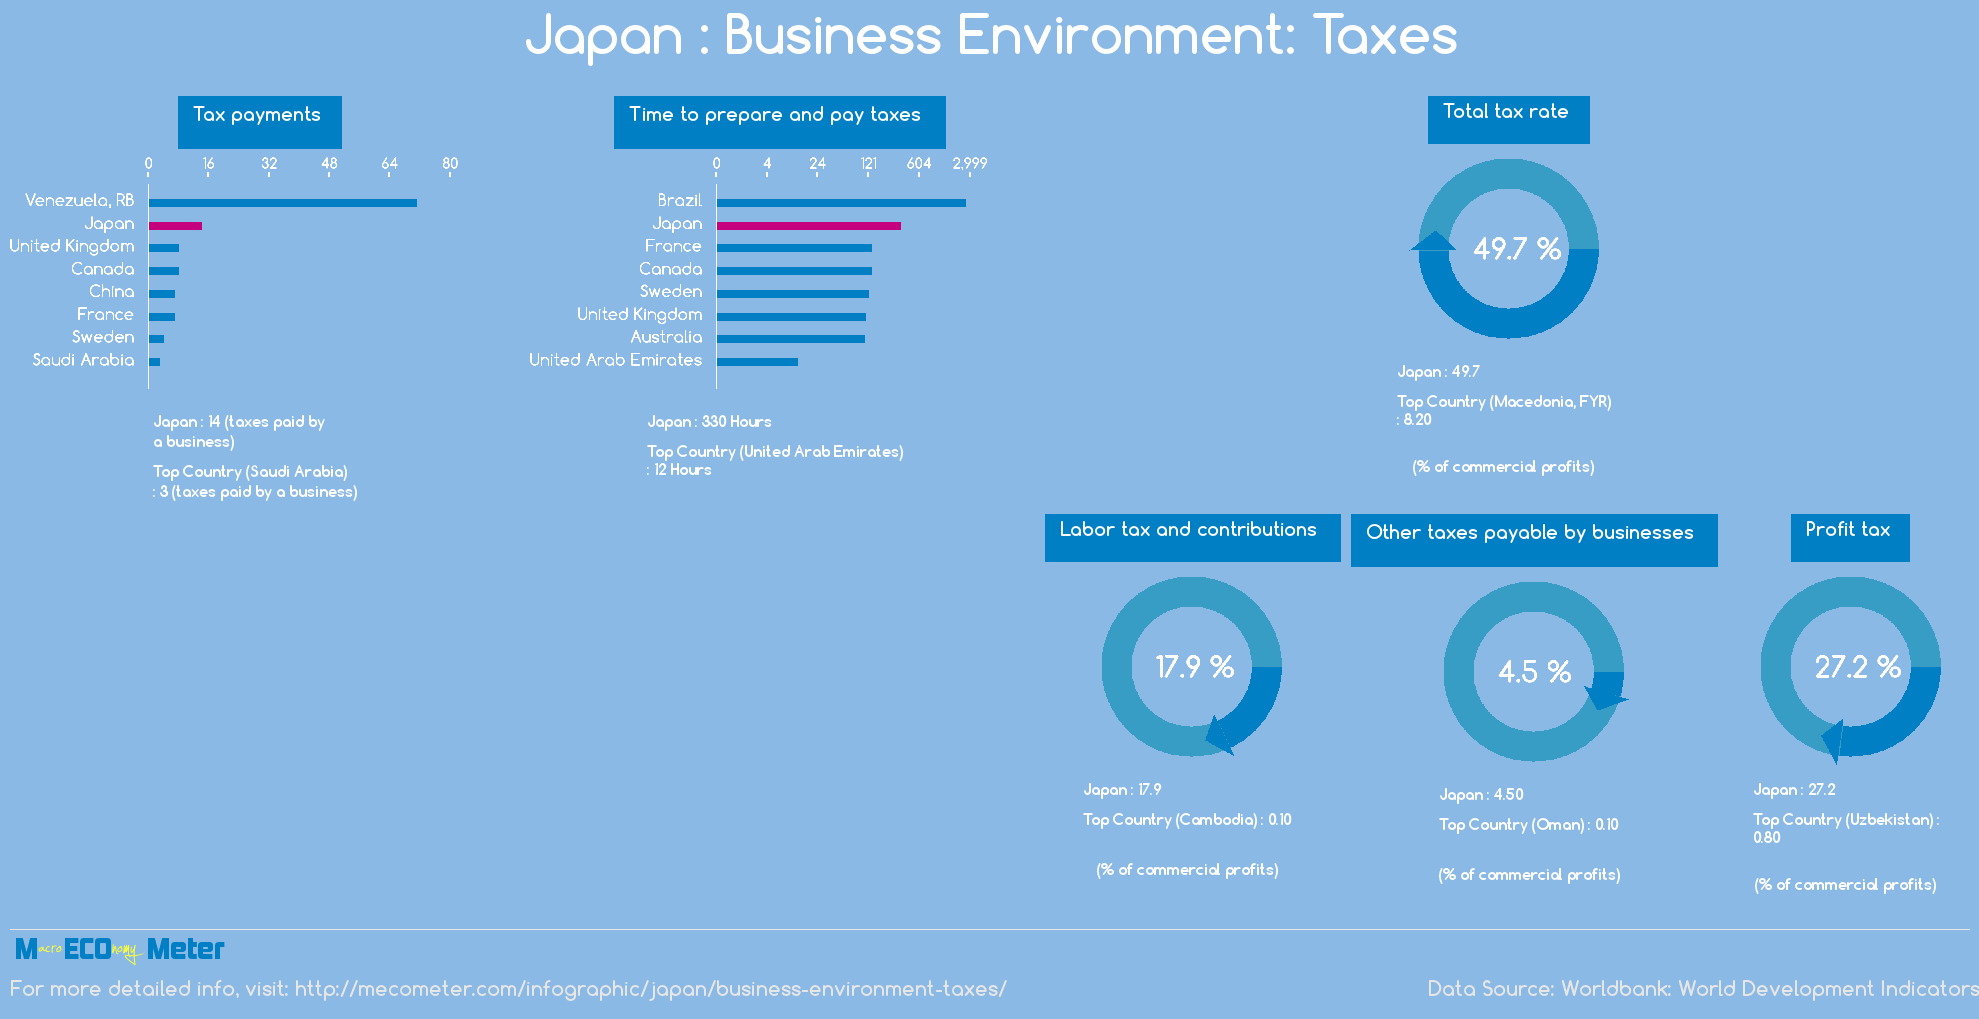 Japan : Business Environment: Taxes